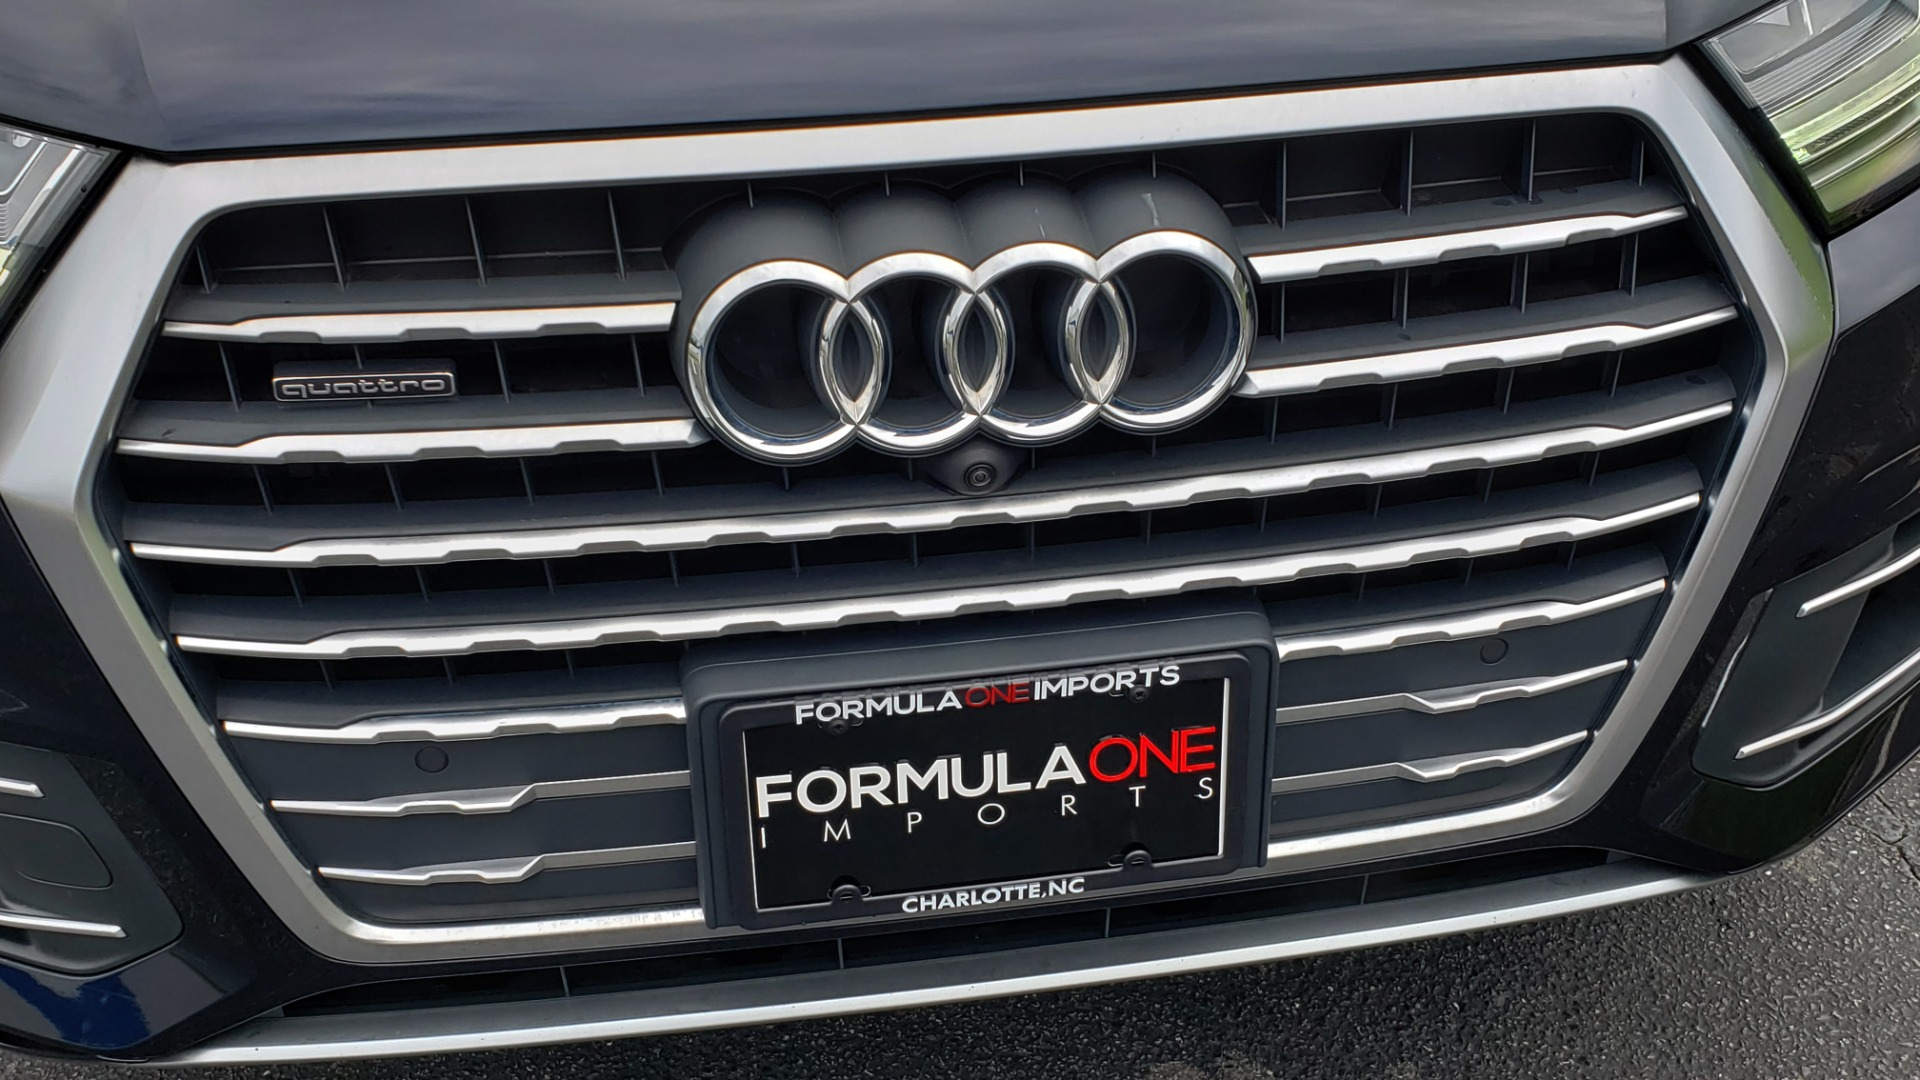 Used 2017 Audi Q7 PRESTIGE 3.0T / AWD / NAV / PANO-ROOF / HTD STS / BOSE / VISION for sale Sold at Formula Imports in Charlotte NC 28227 33